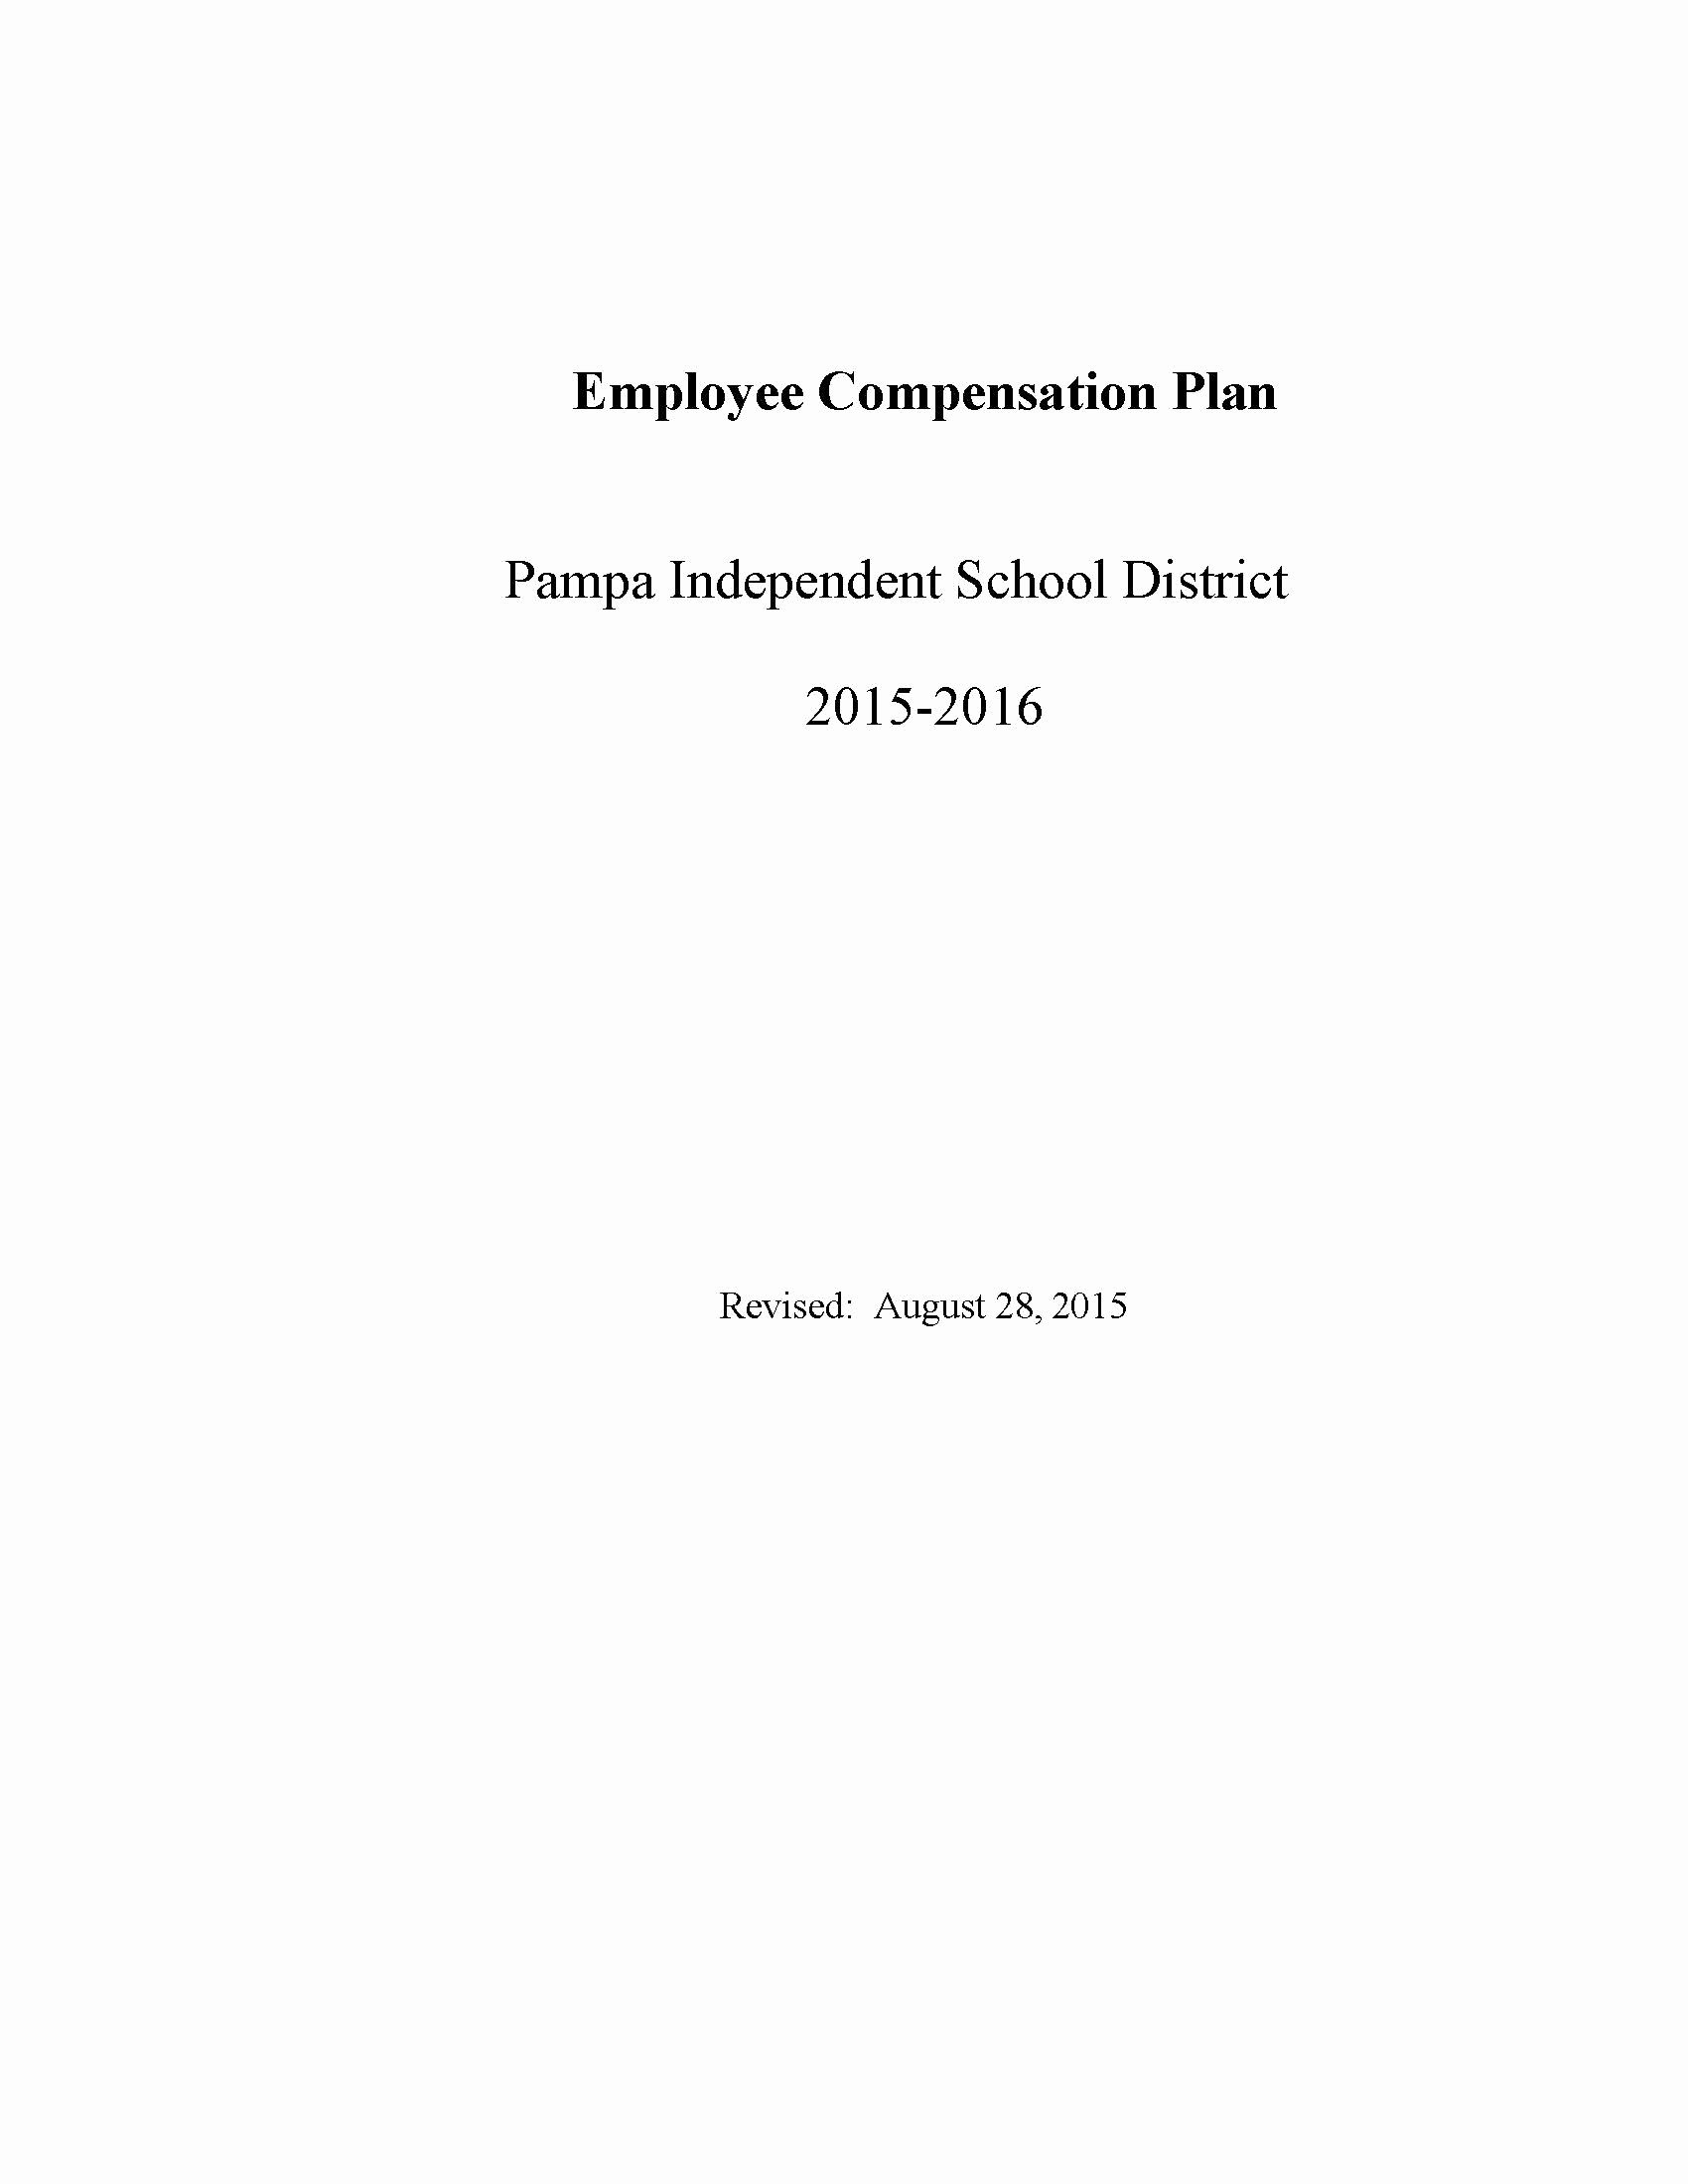 Employee Compensation Plan Template Awesome Employee Pensation Plan Template Pdf format